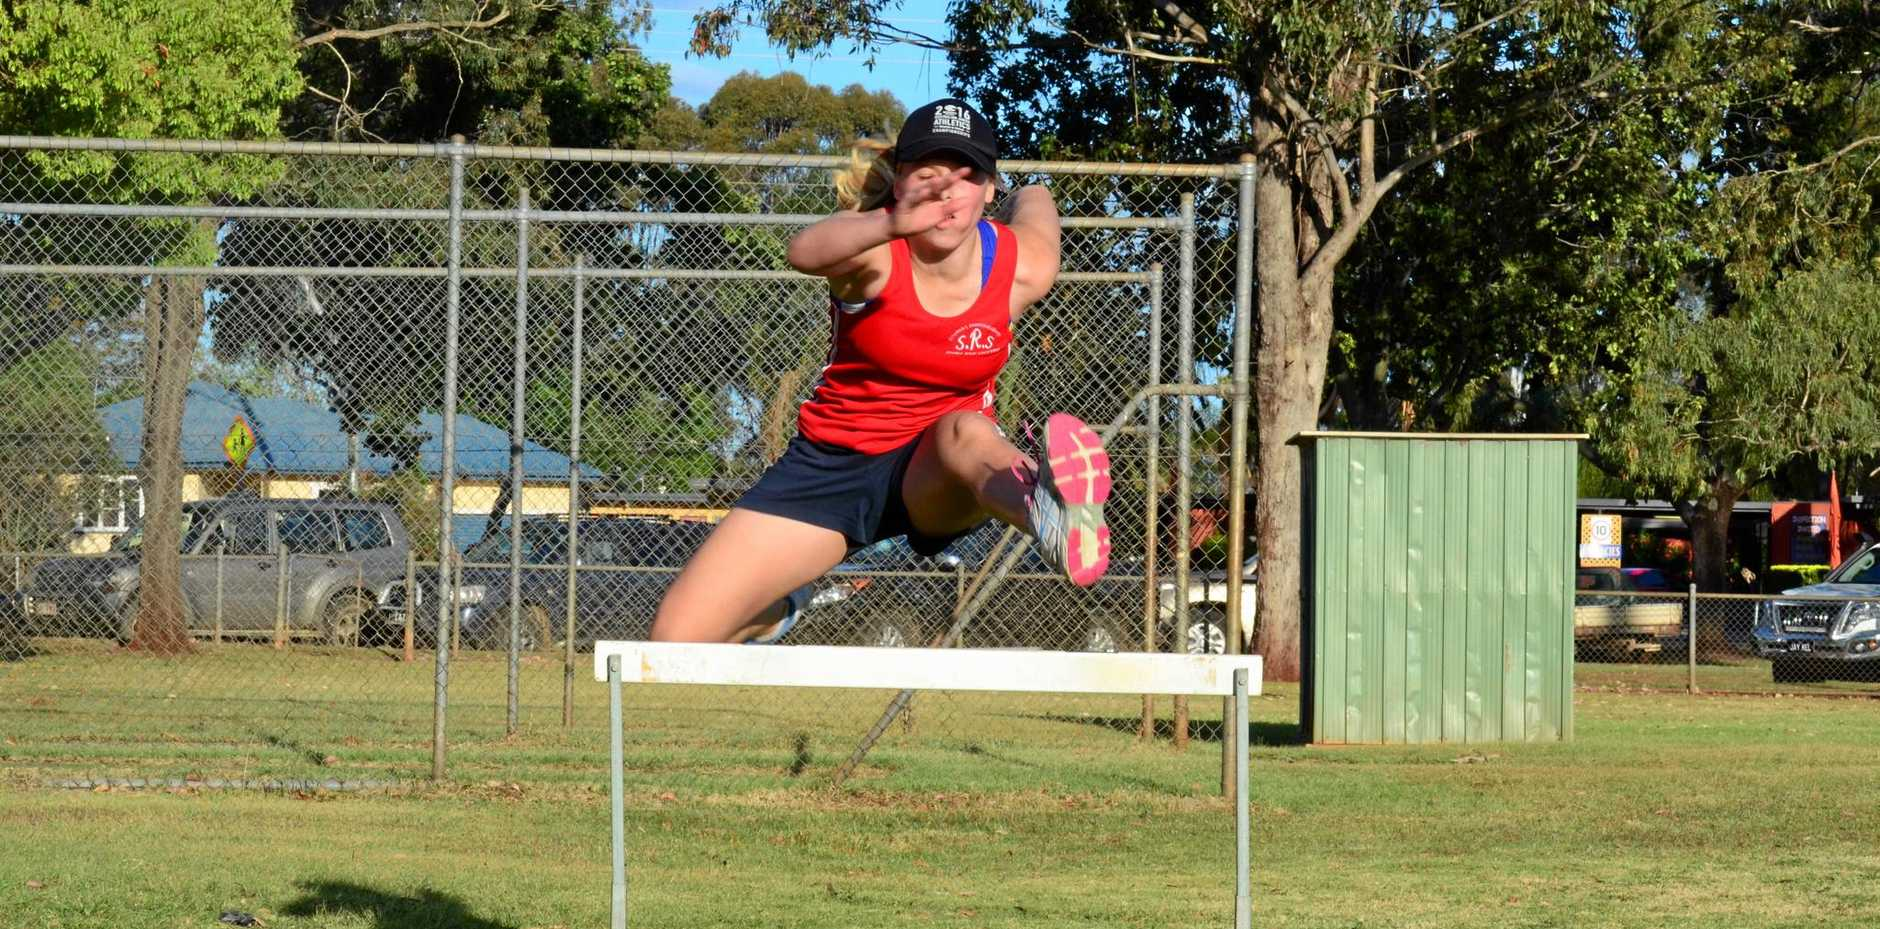 TAKING THE LEAP: Bree Pogany was just milliseconds away from a finals berth at the Queensland State Athletics Championships.